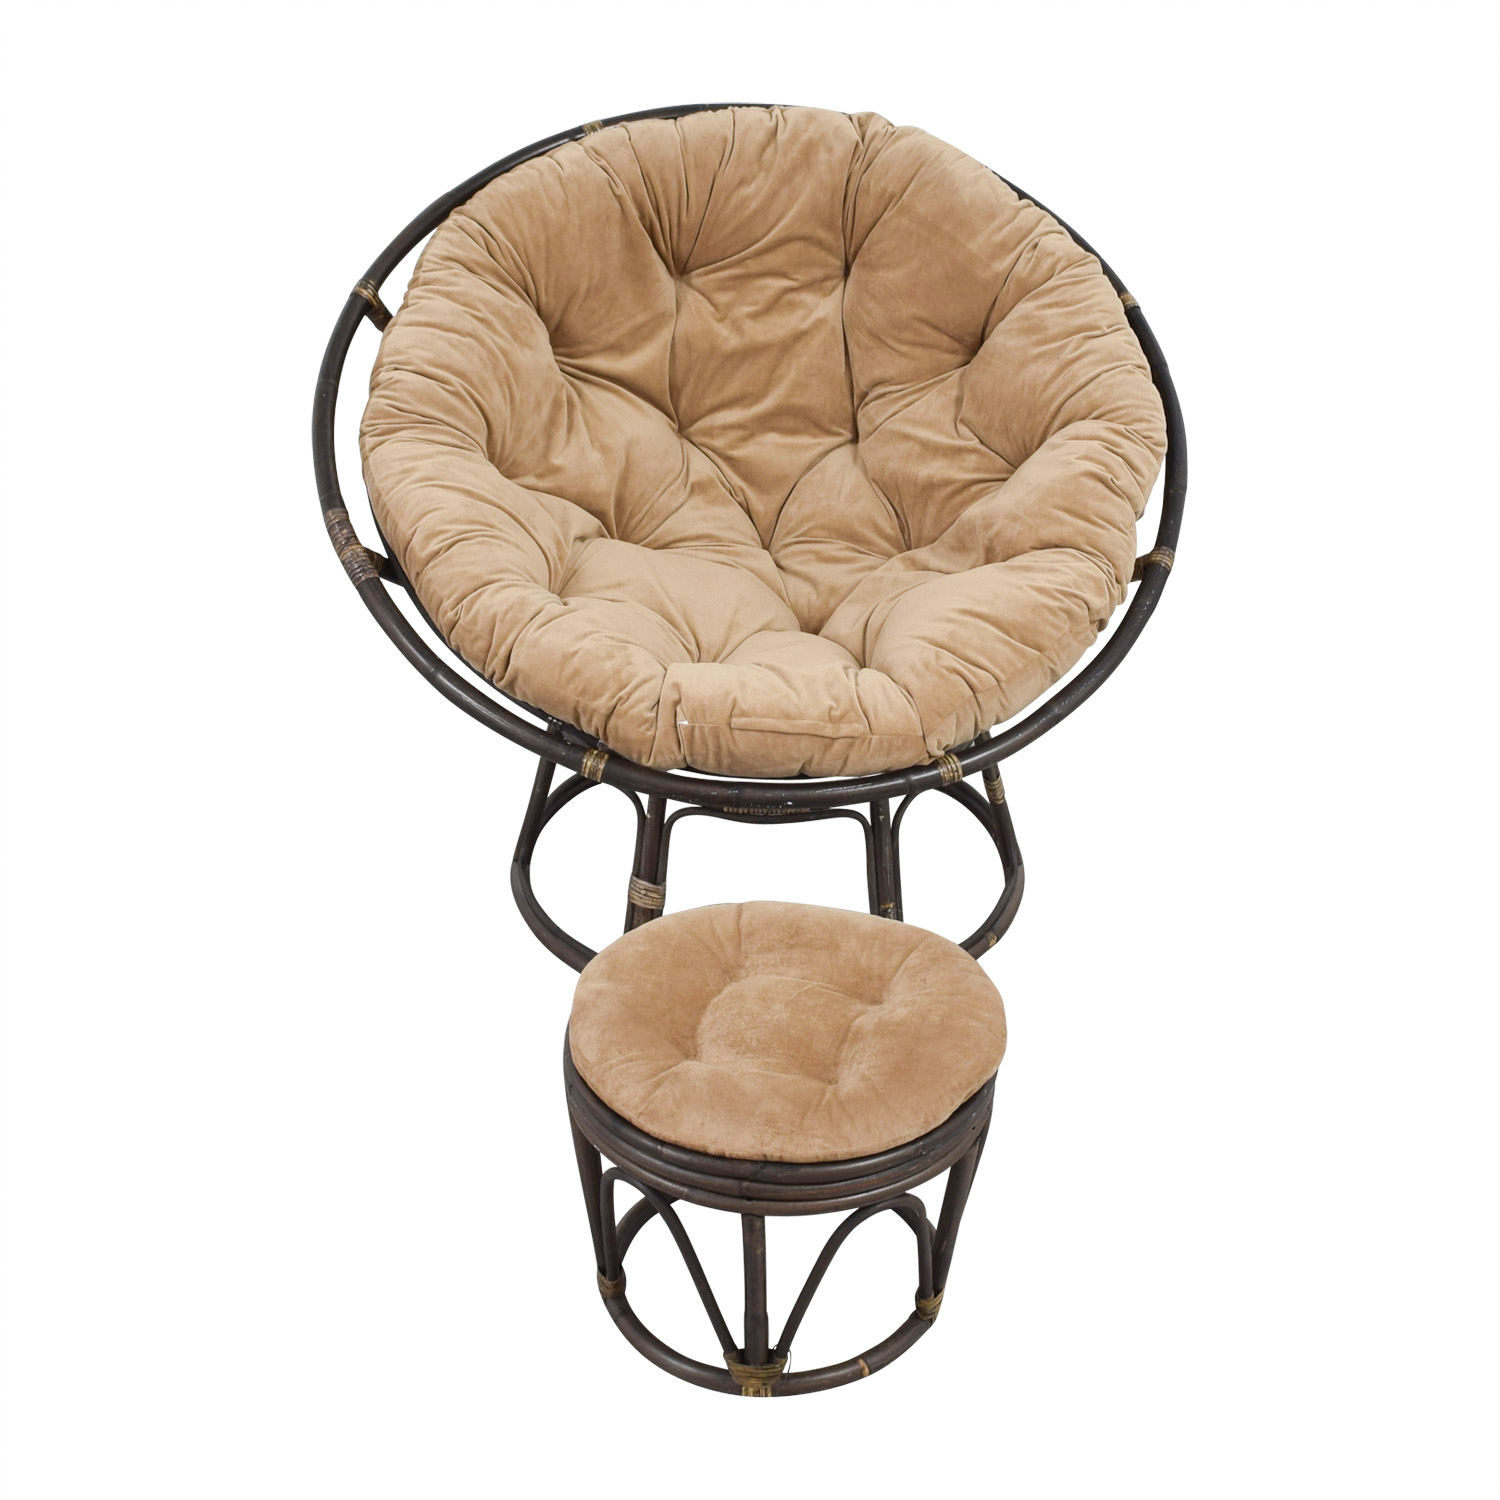 Fantastic 63 Off Pier 1 Pier 1 Imports Papasan Brown Lounge Chair And Ottoman Chairs Andrewgaddart Wooden Chair Designs For Living Room Andrewgaddartcom